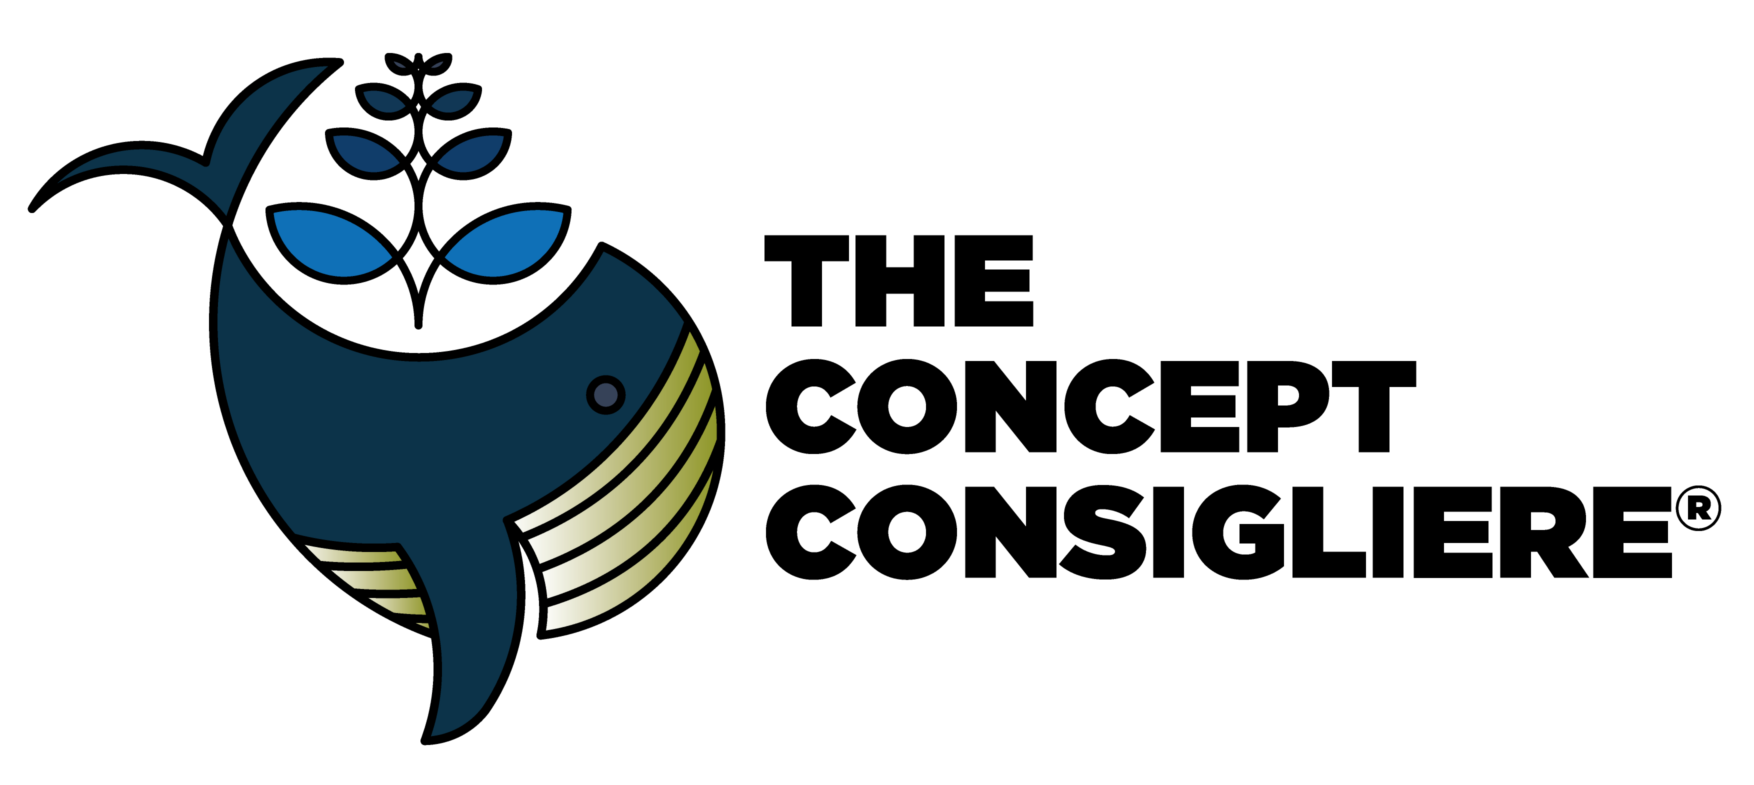 The Concept Consigliere